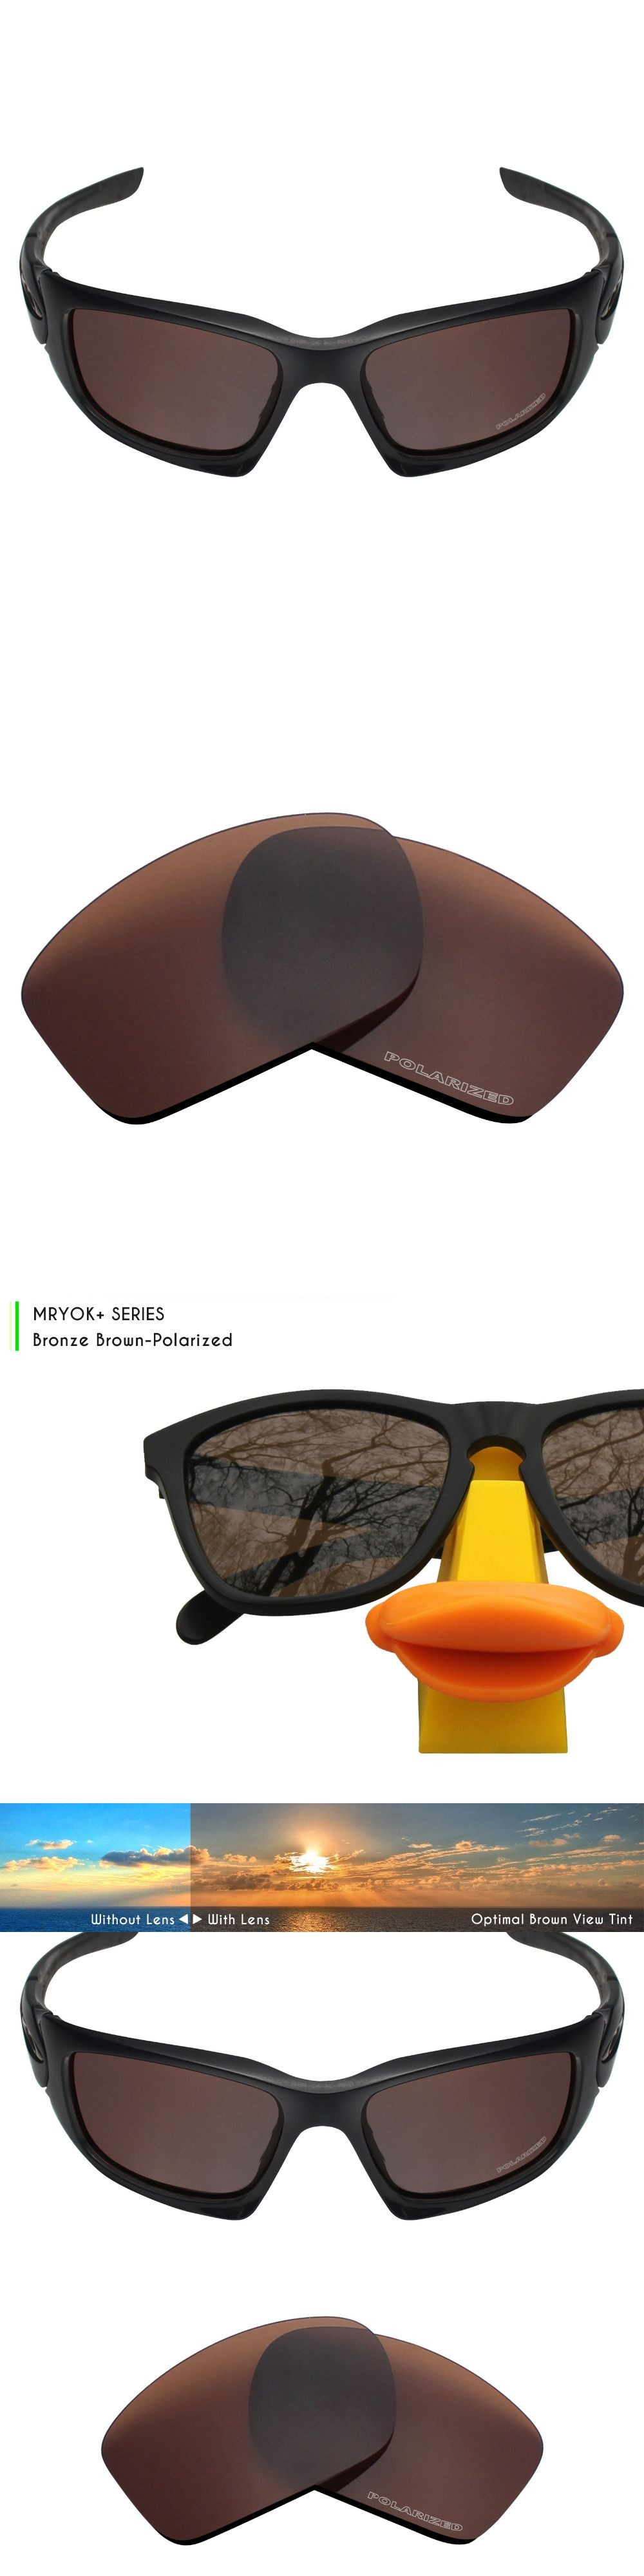 be77331157691 Mryok+ POLARIZED Resist SeaWater Replacement Lenses for Oakley Scalpel  Sunglasses Bronze Brown